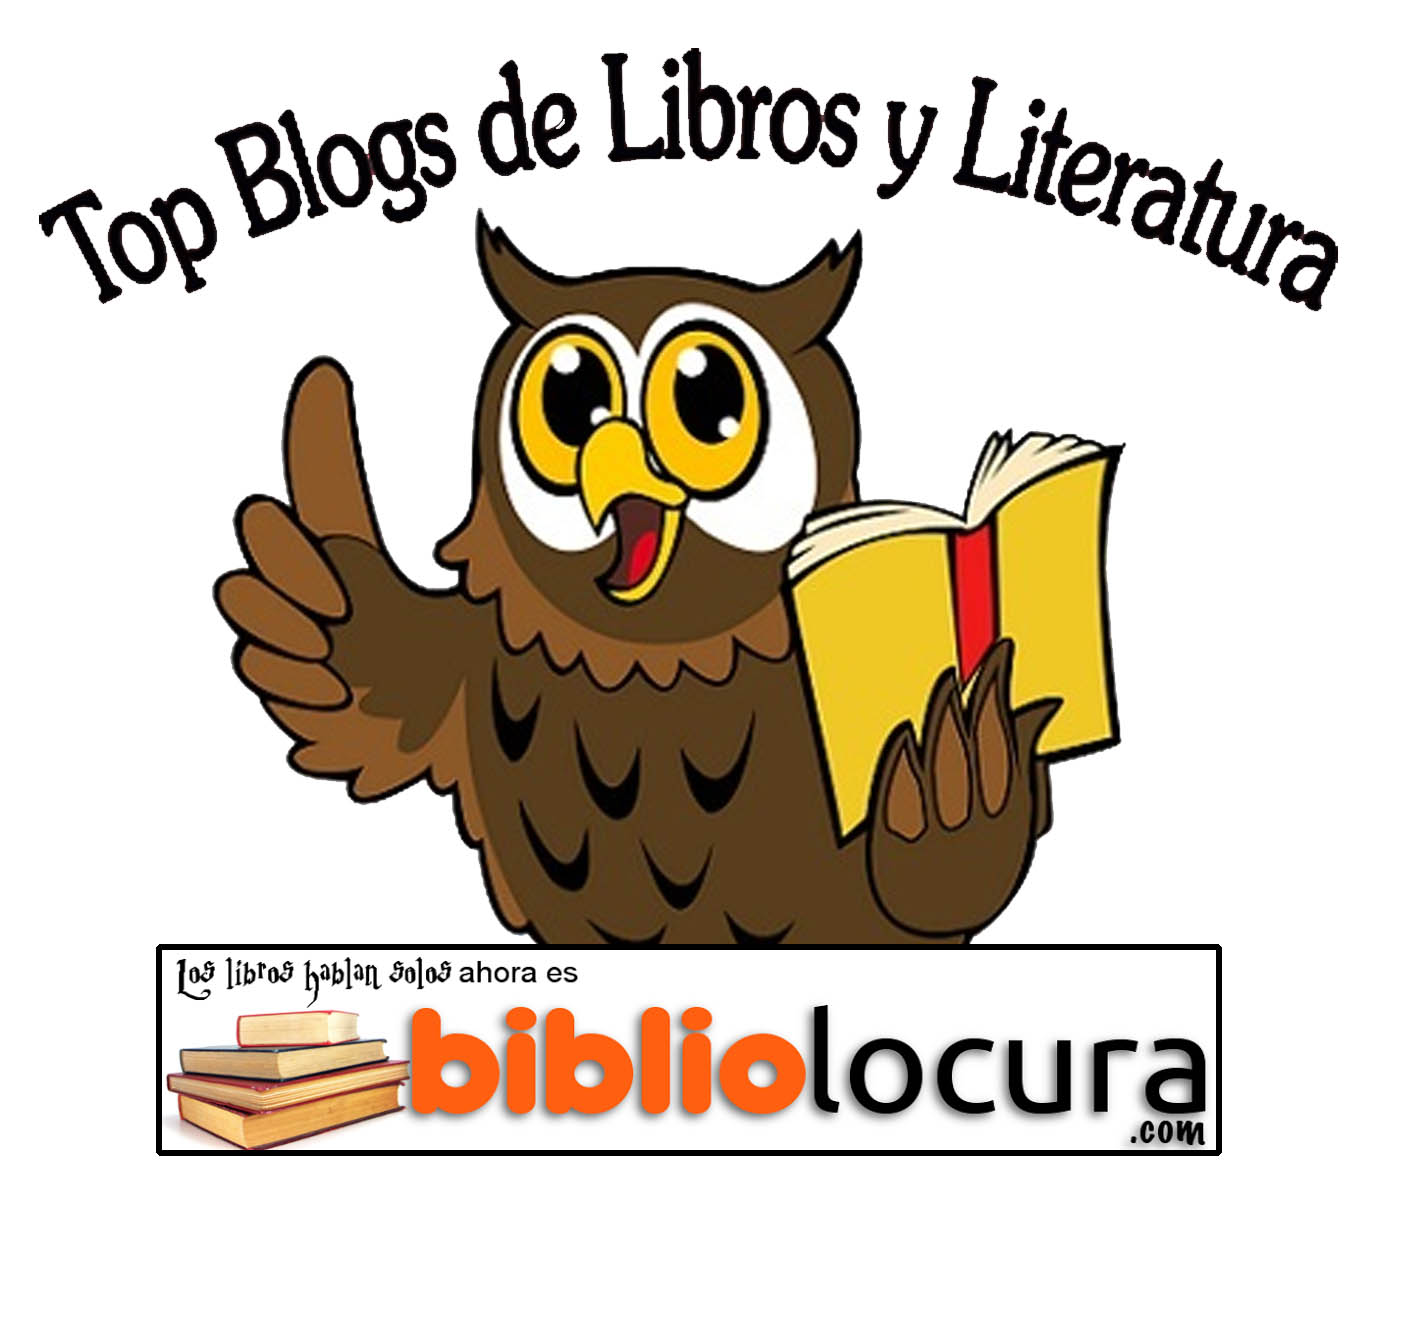 Top Blogs de Libros y Literatura